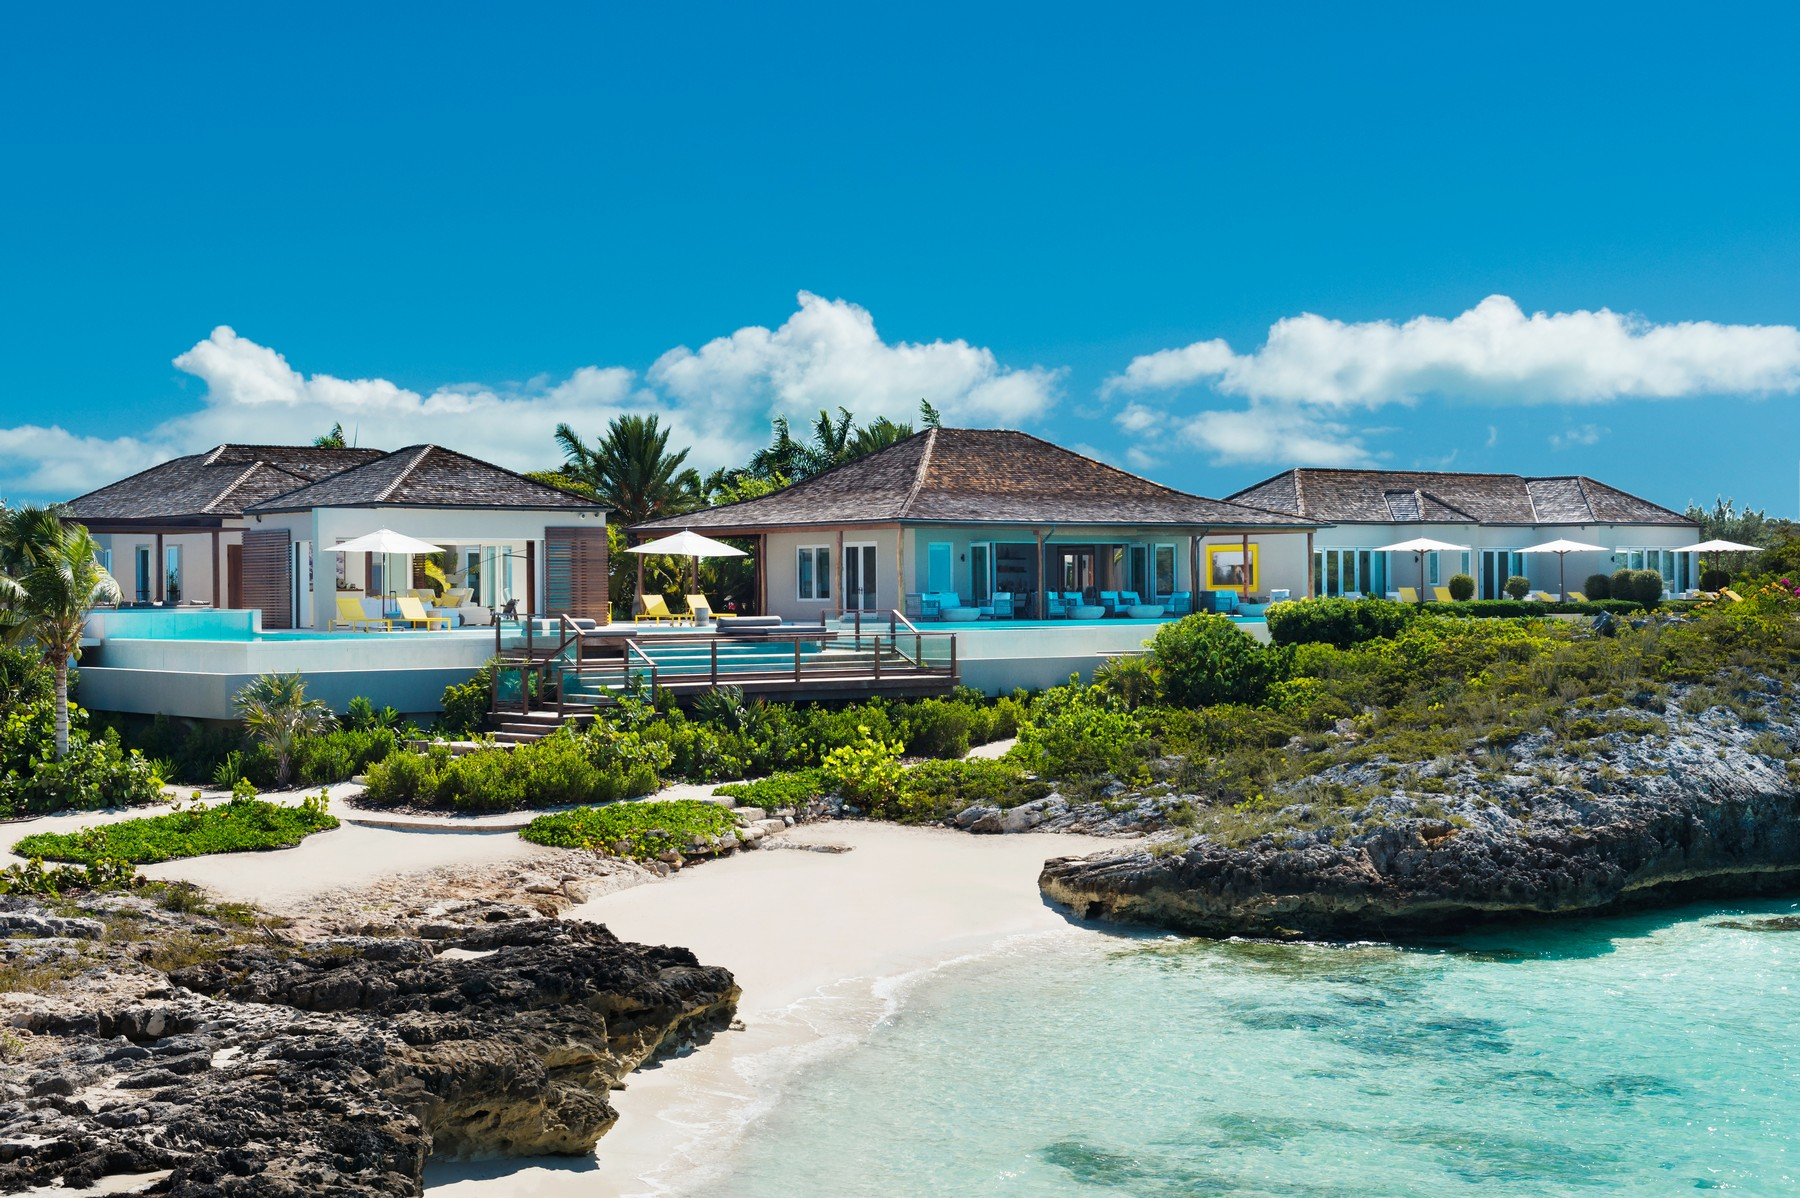 30 Reasons Why Buying This Caribbean Estate is the Best Use of $25 Million